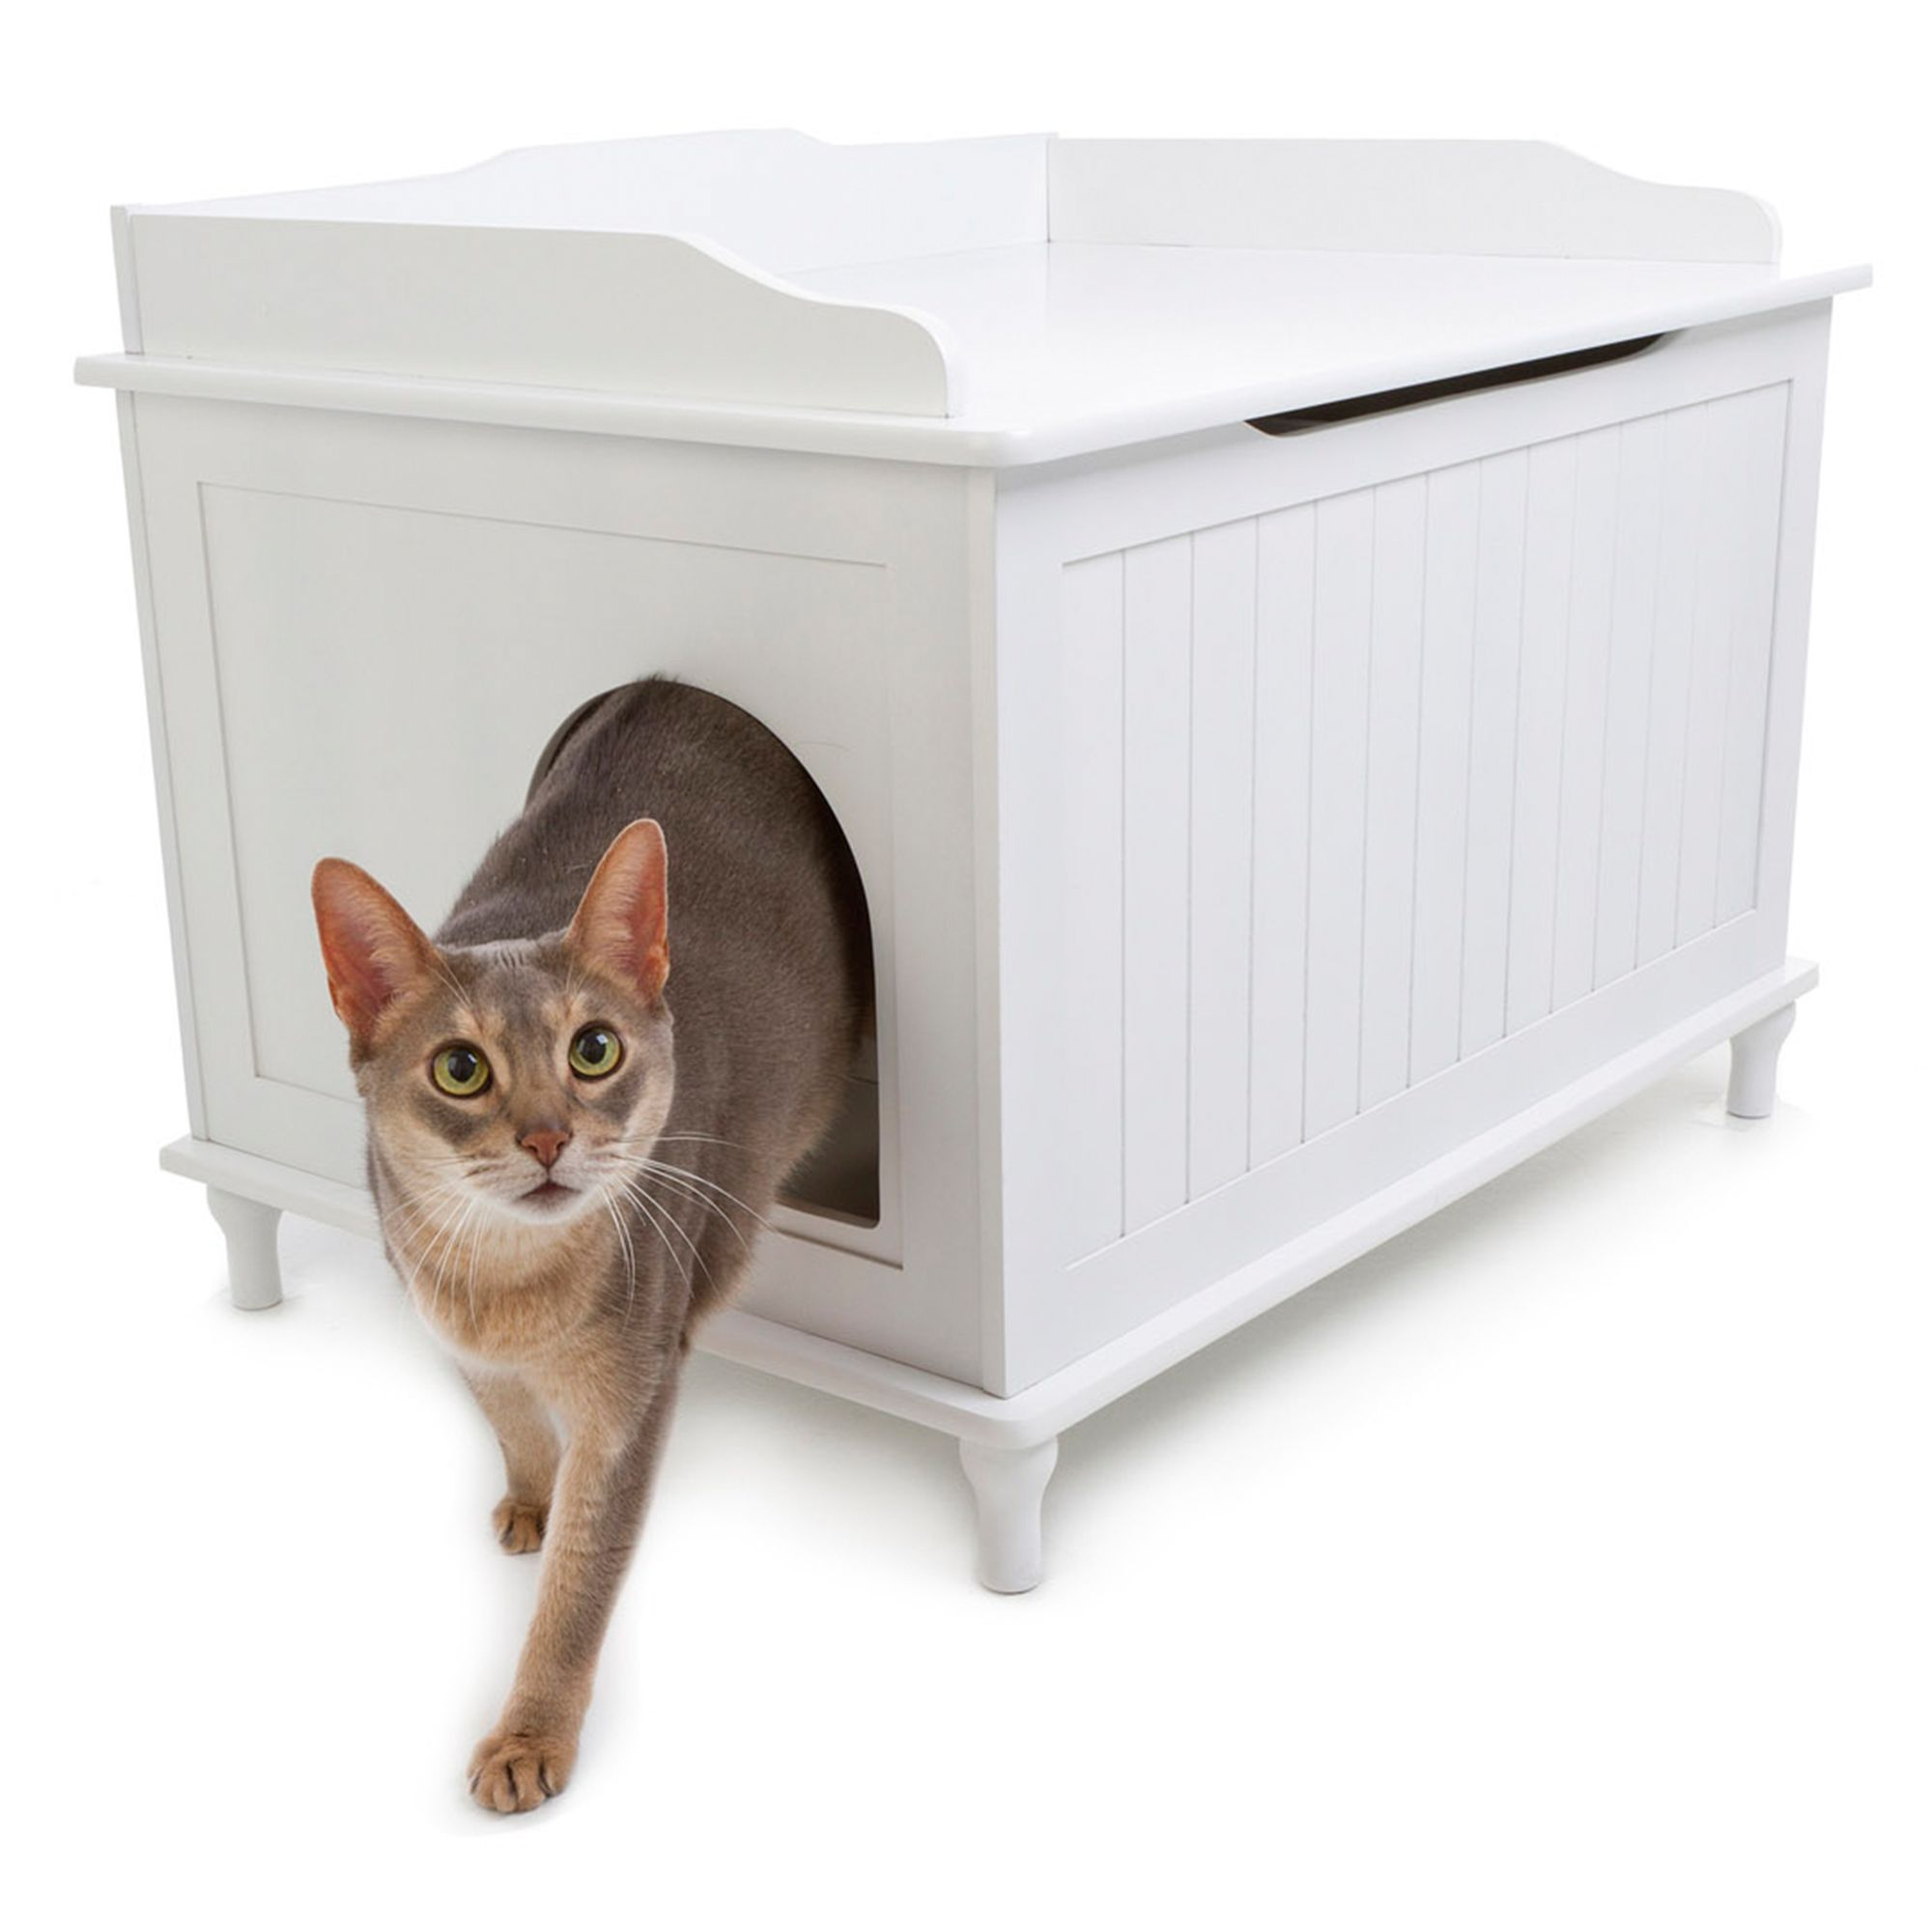 Designer Pet Products Designer Cat Litter Box Size 29.1l X 20.6w X 20.8h White